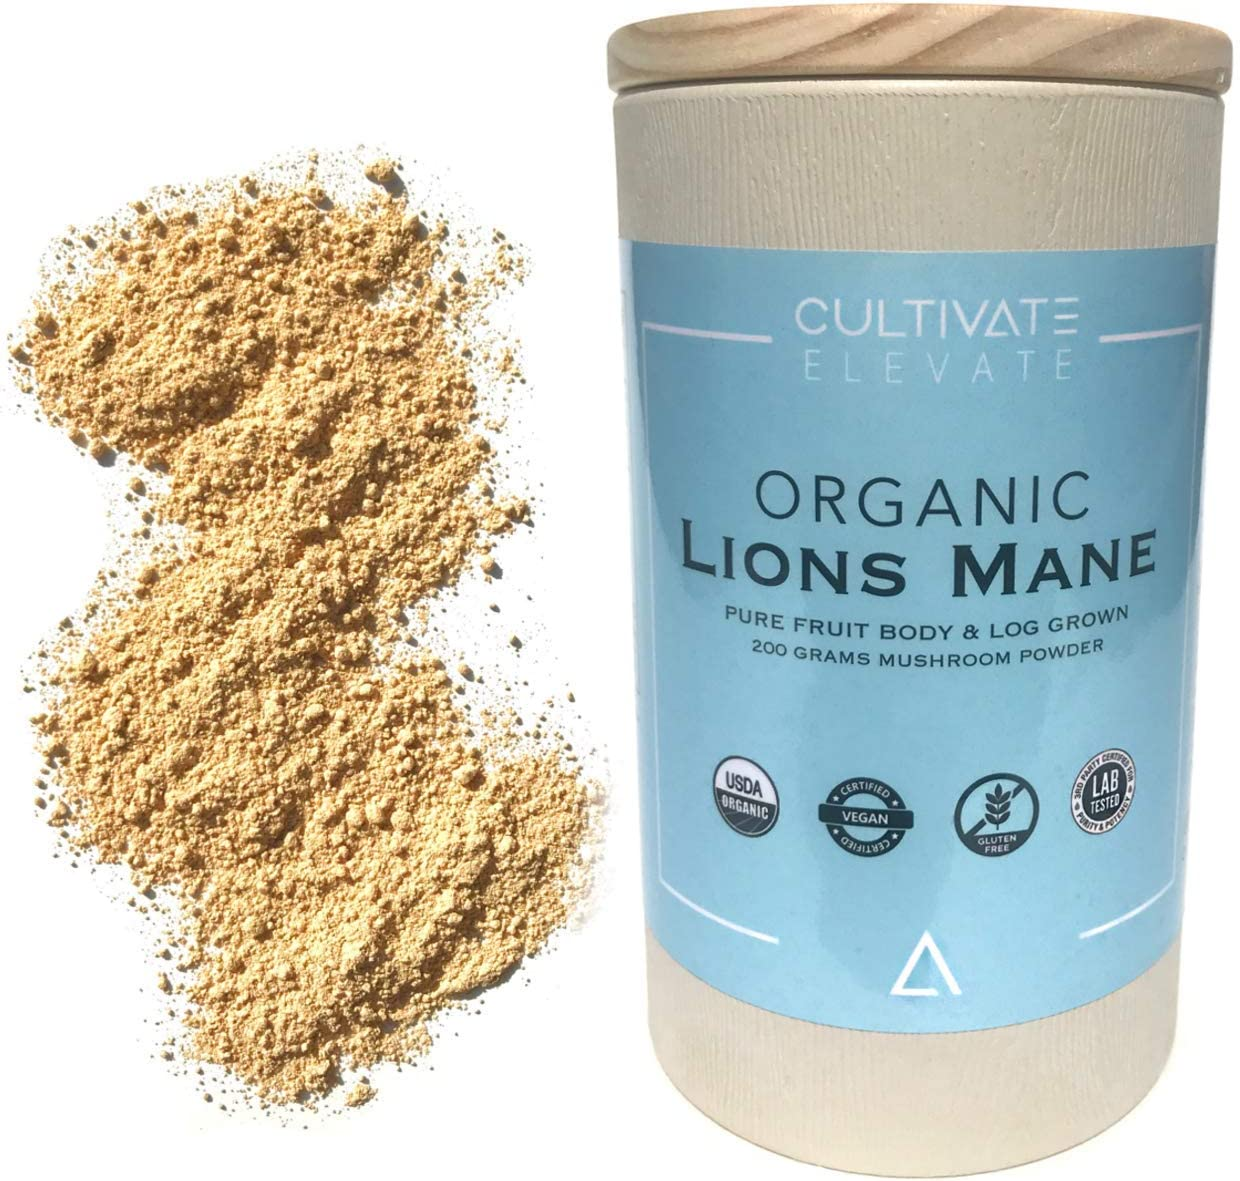 USDA Organic Lion s Mane Mushroom Powder – 3 Month Supply 100 Servings Log Grown 100 Fruit Body, Vegan, Memory, Focus, Cognition, Mental Clarity, Nerve Health, 200g